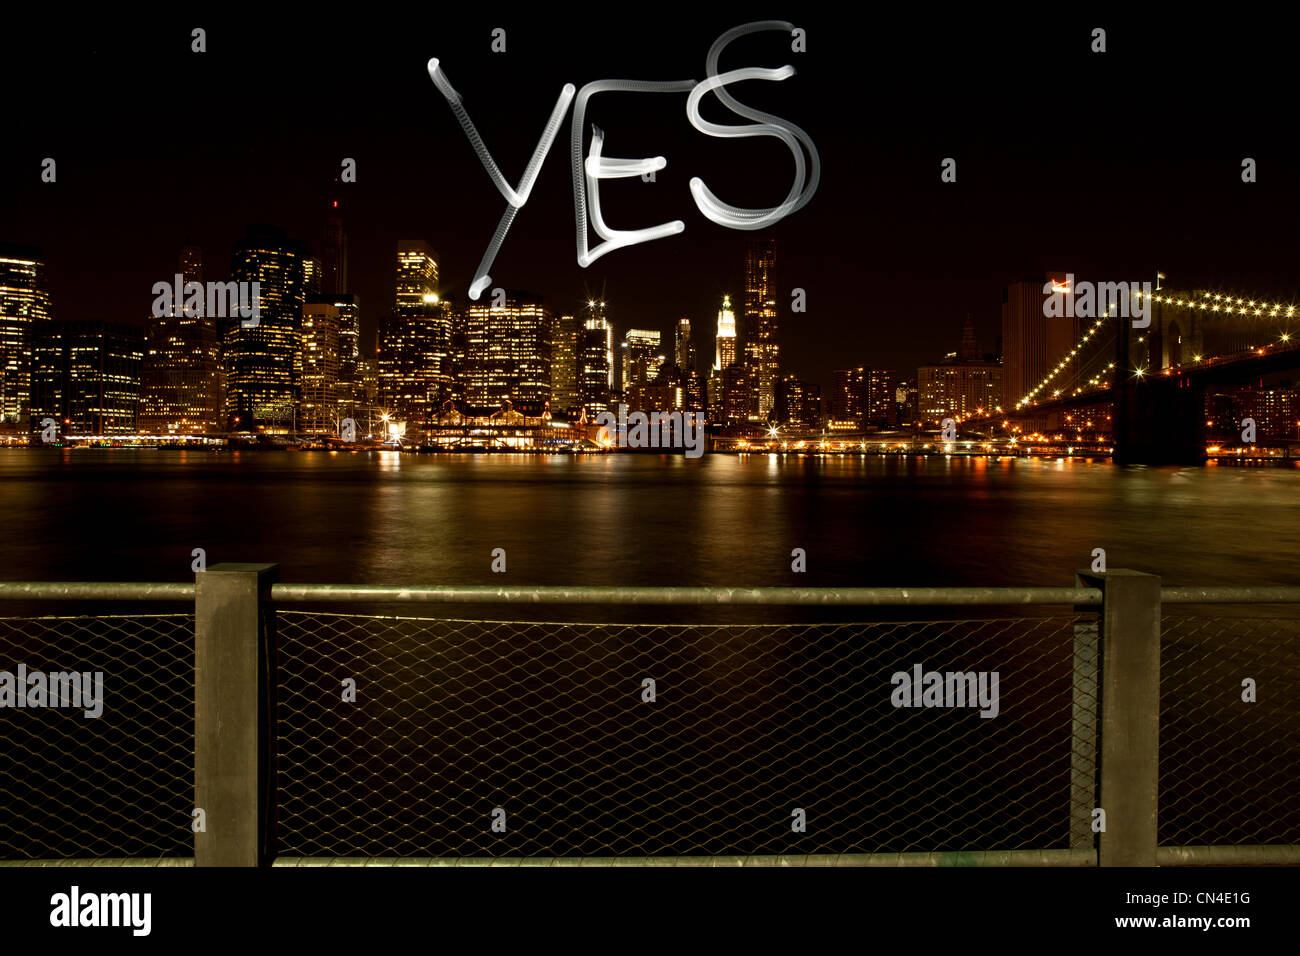 Yes written by light trail at night - Stock Image